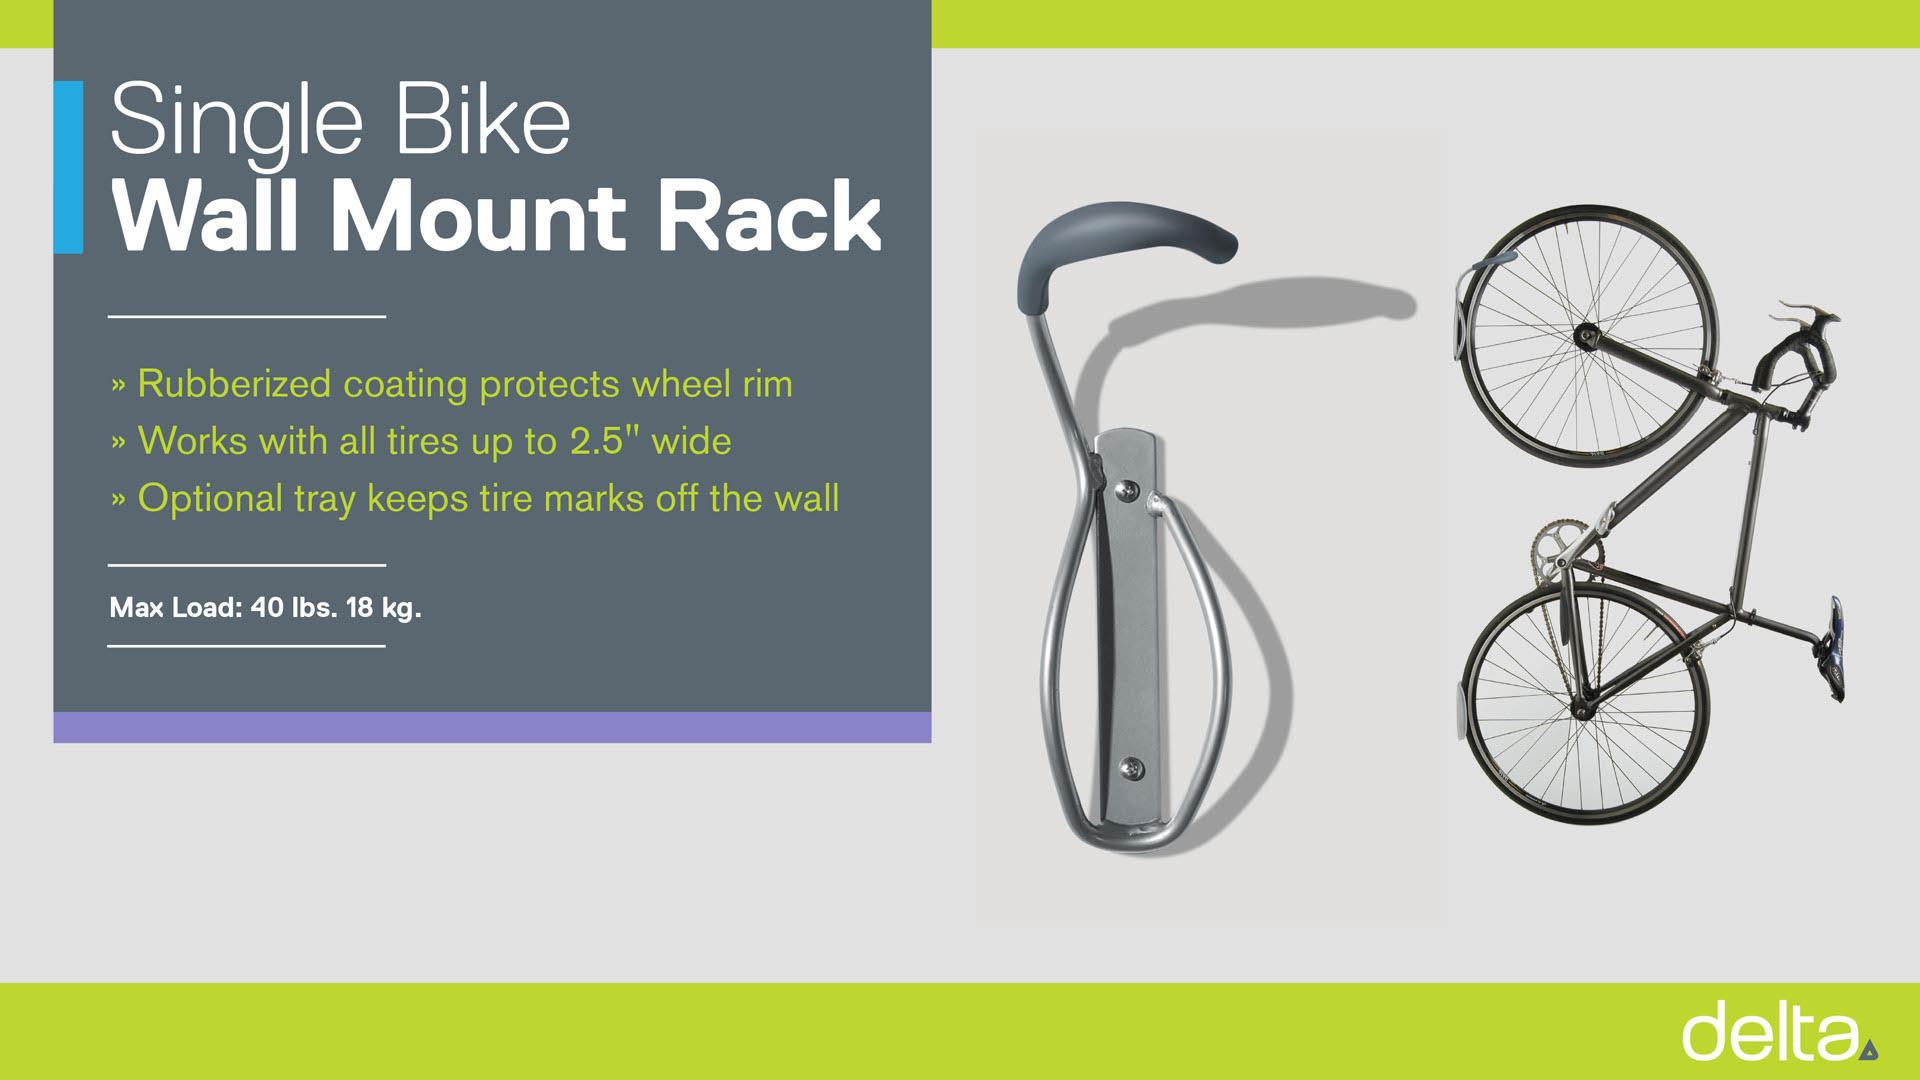 Single Bike Wall Mount Rack instructions